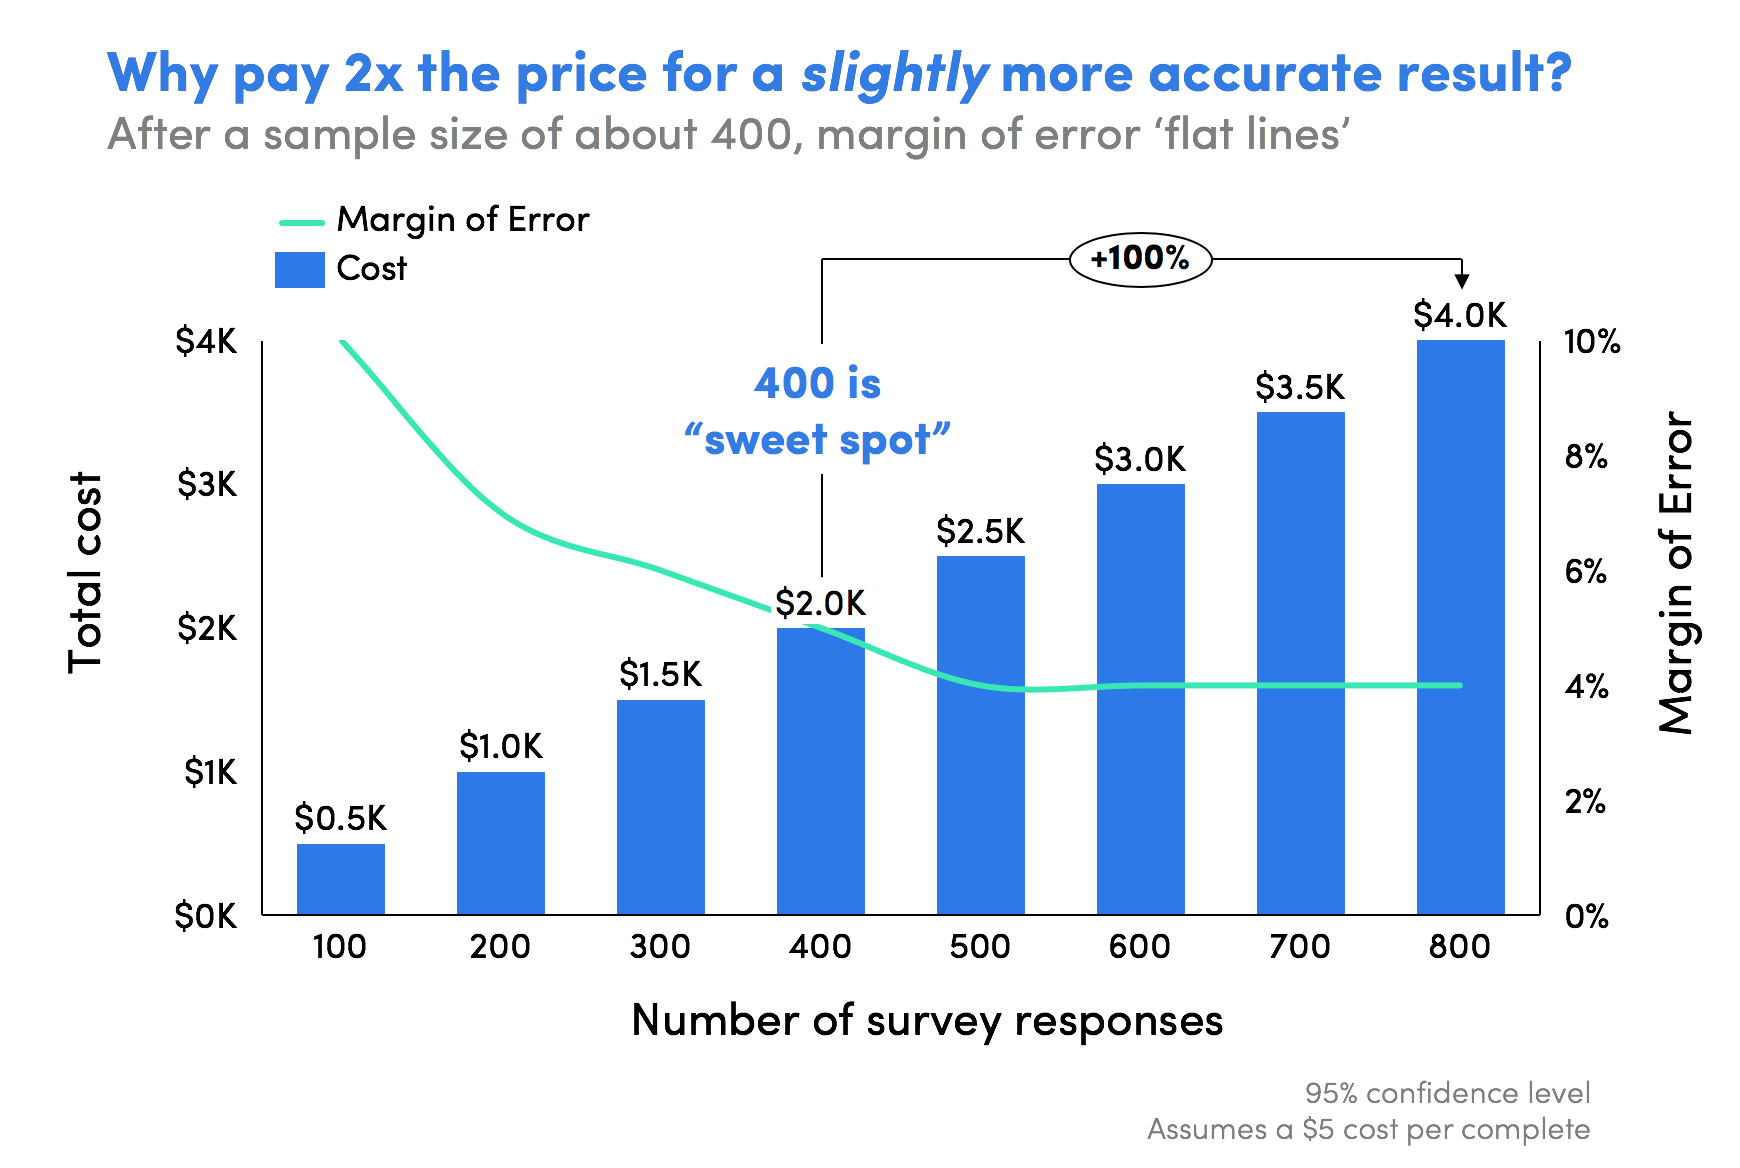 Market research sample size cost benefit bar chart